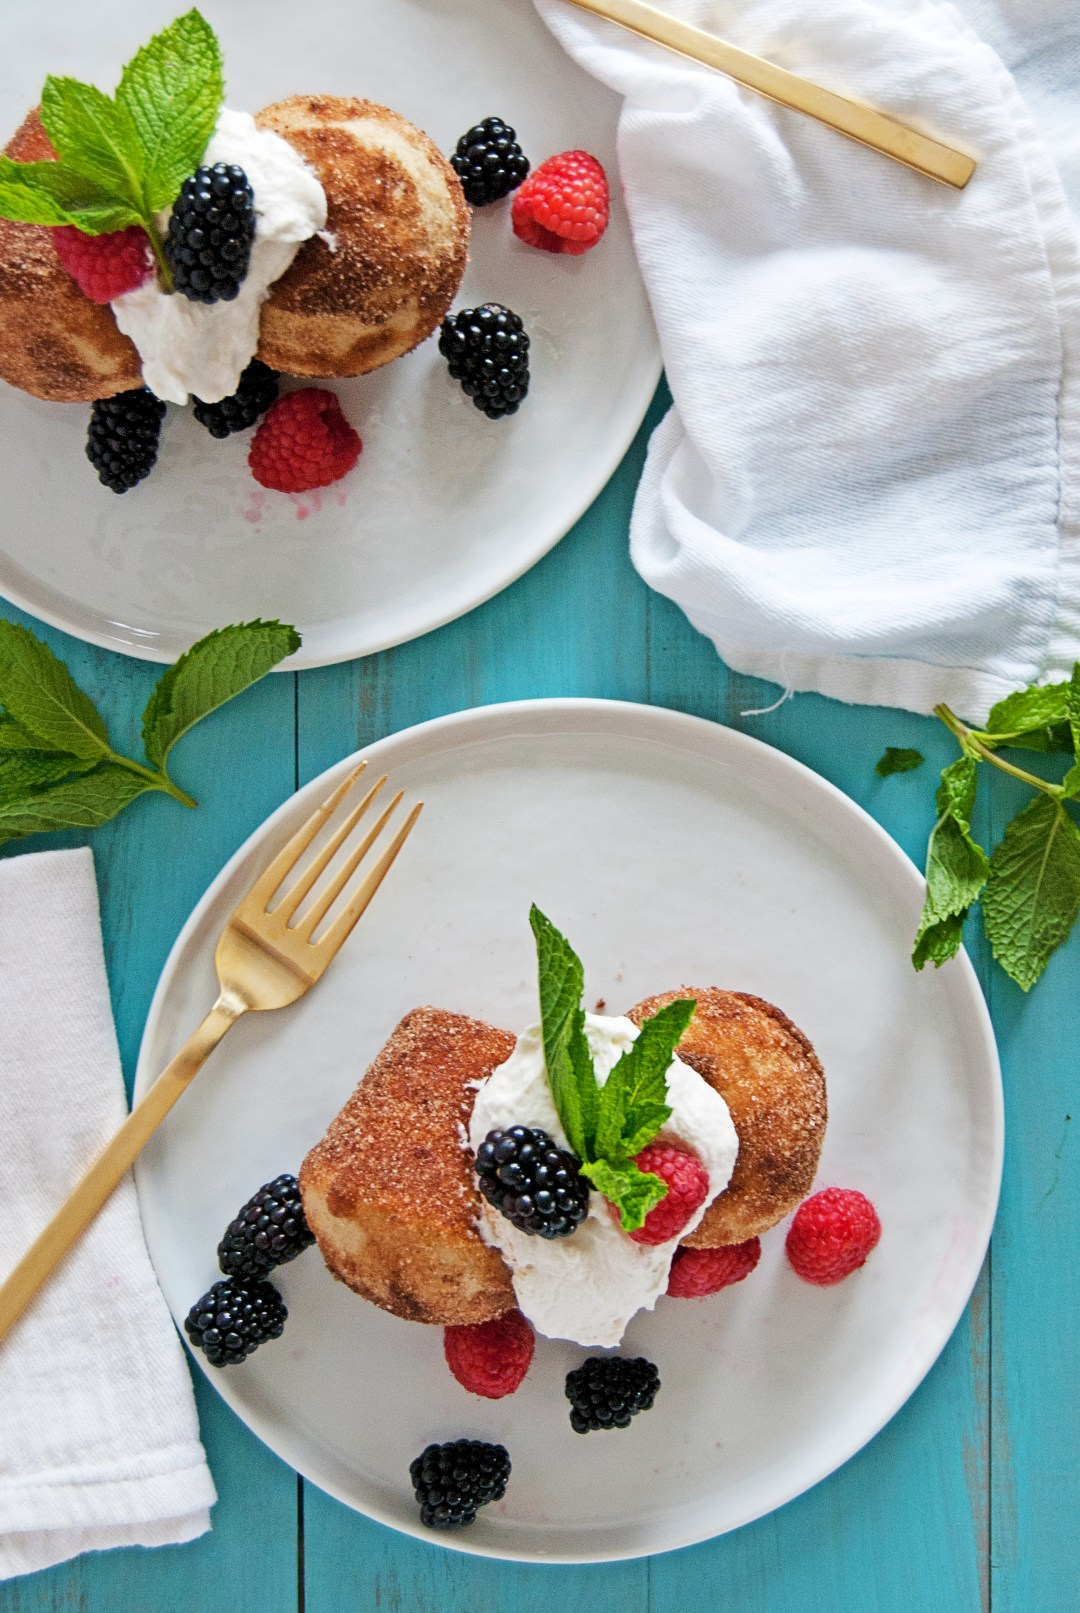 These tasty French breakfast puffs are paired with a fluffy homemade whipped cream and fresh blackberries and raspberries, for a tasty breakfast!